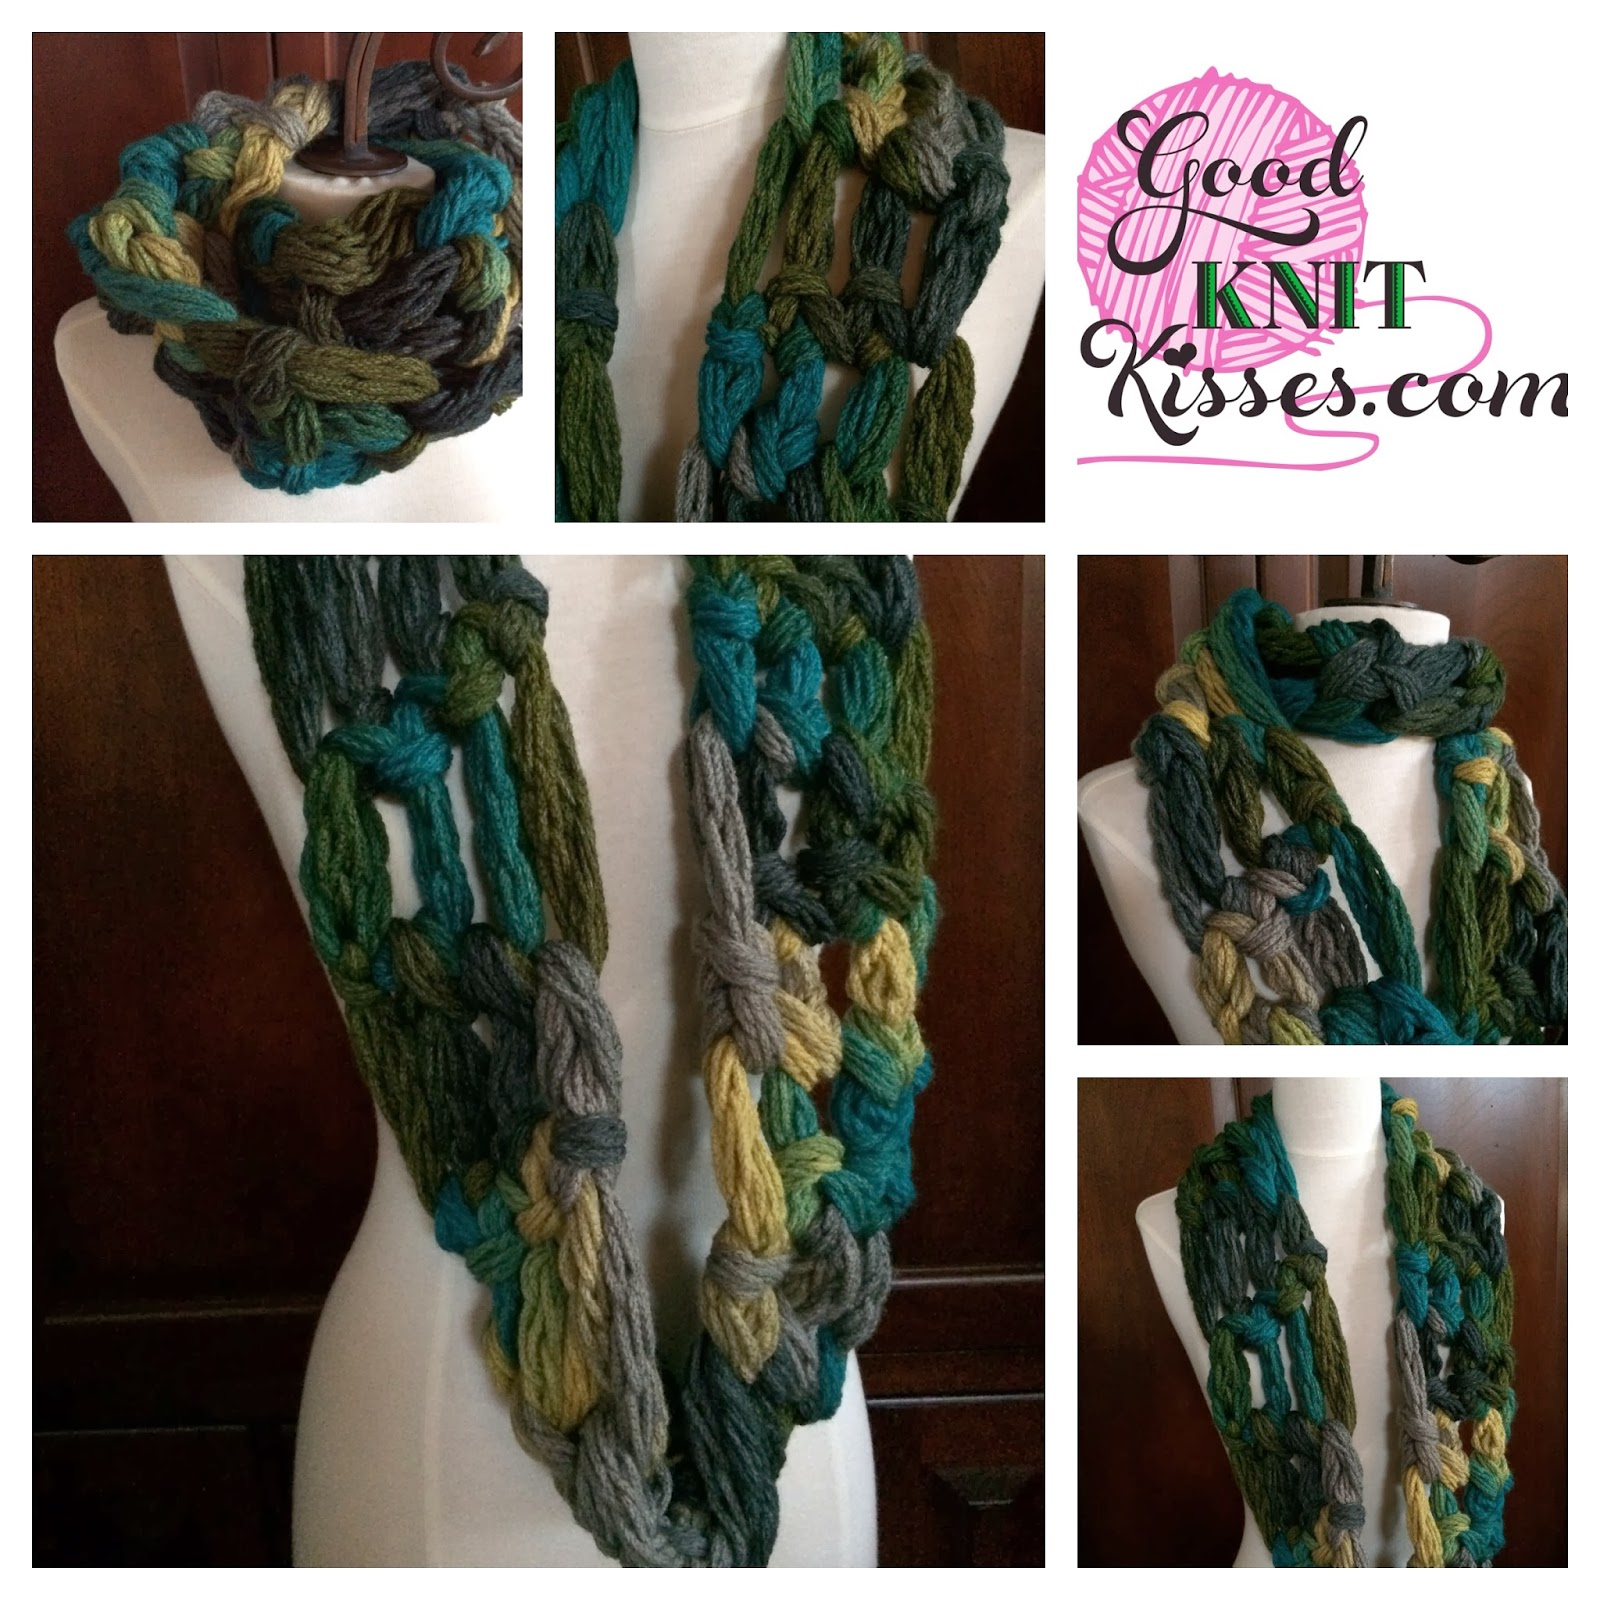 Crocheting With Your Hands : GoodKnit Kisses: Easy Crochet Along Cowl with your Hand or Finger